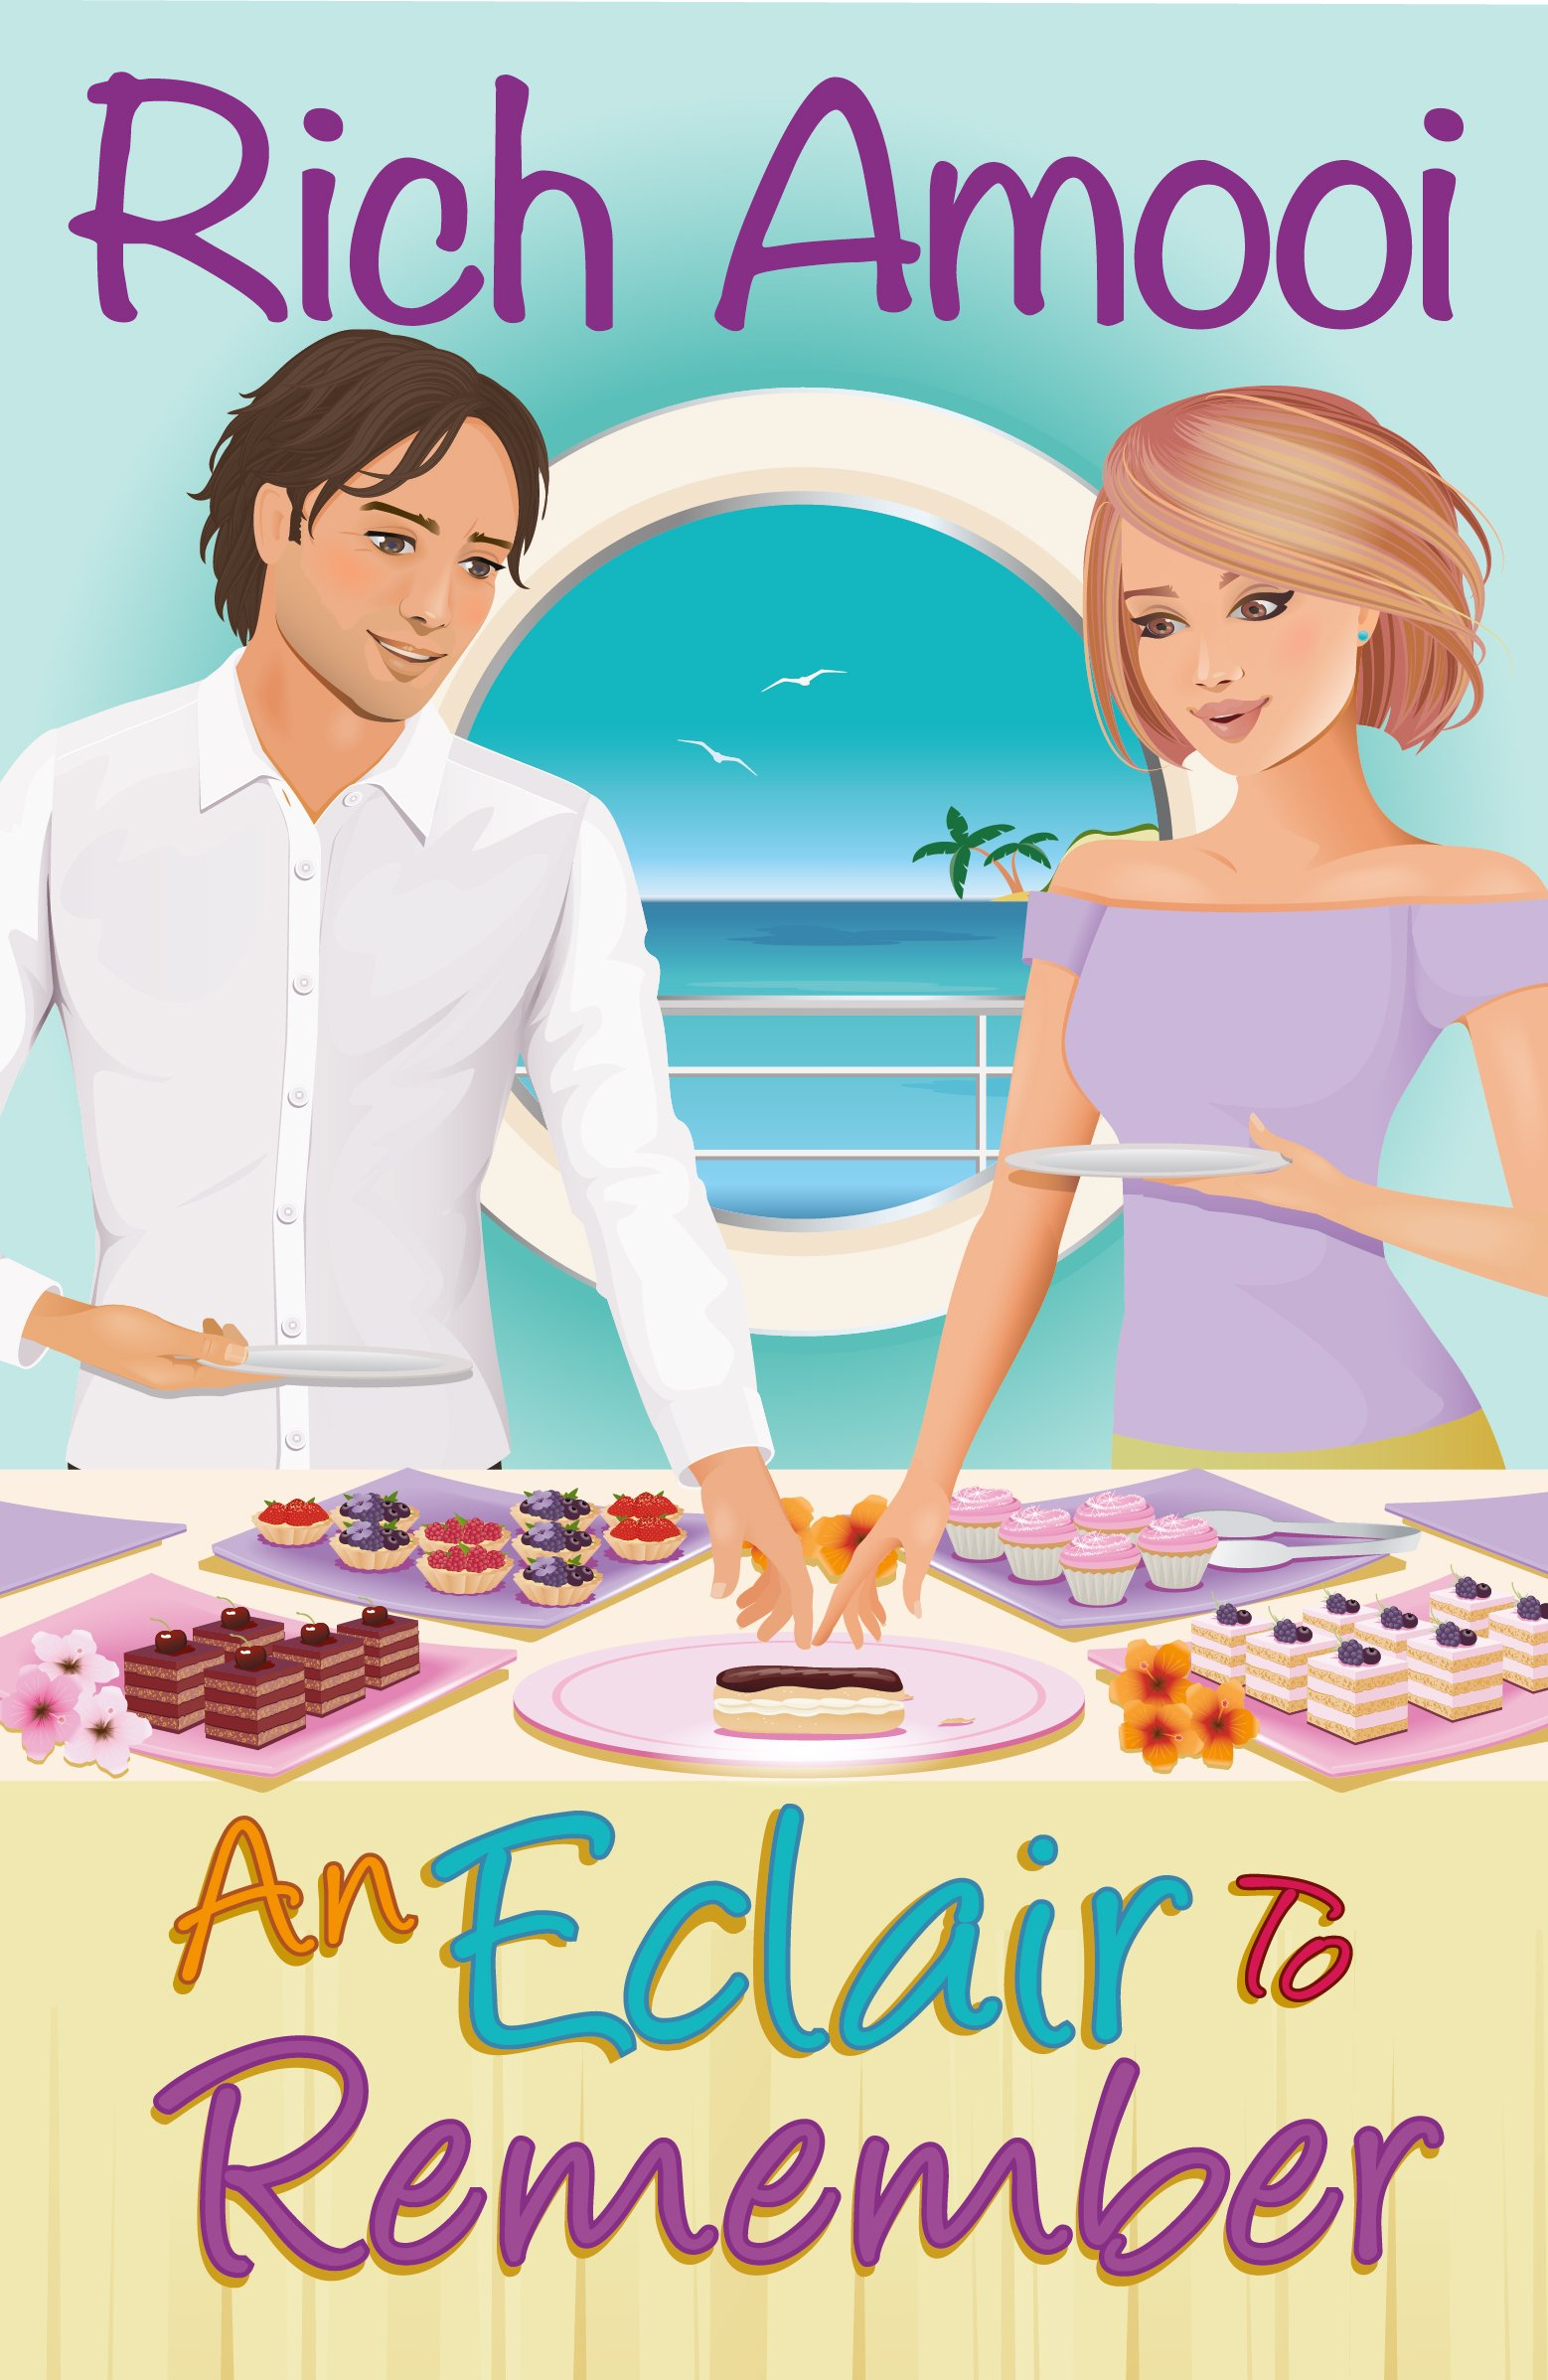 $1 Clean Romantic Comedy Deal for Kindle